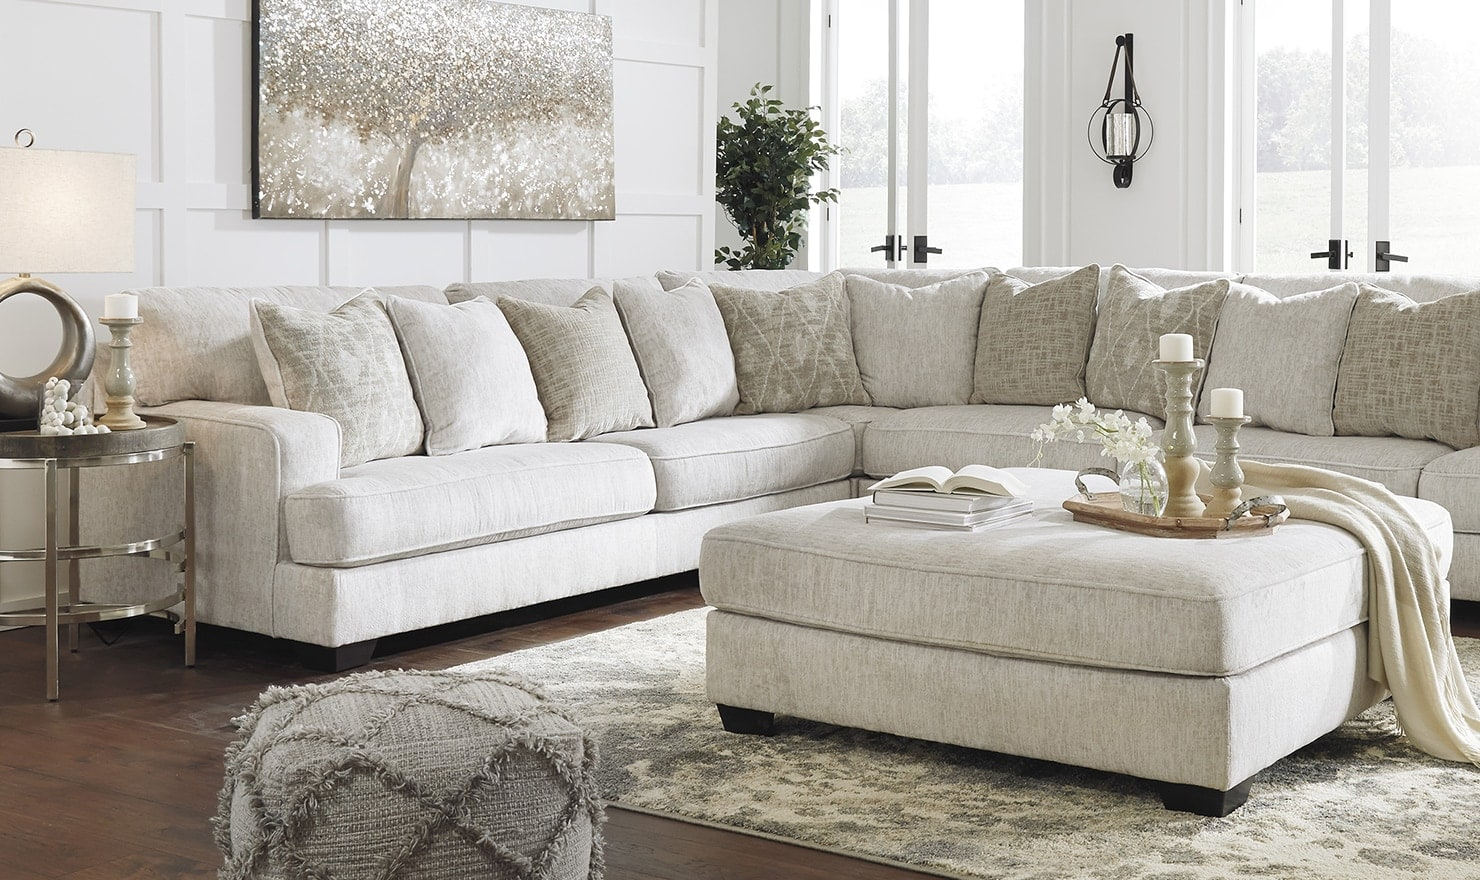 Sunny beige living room sectional